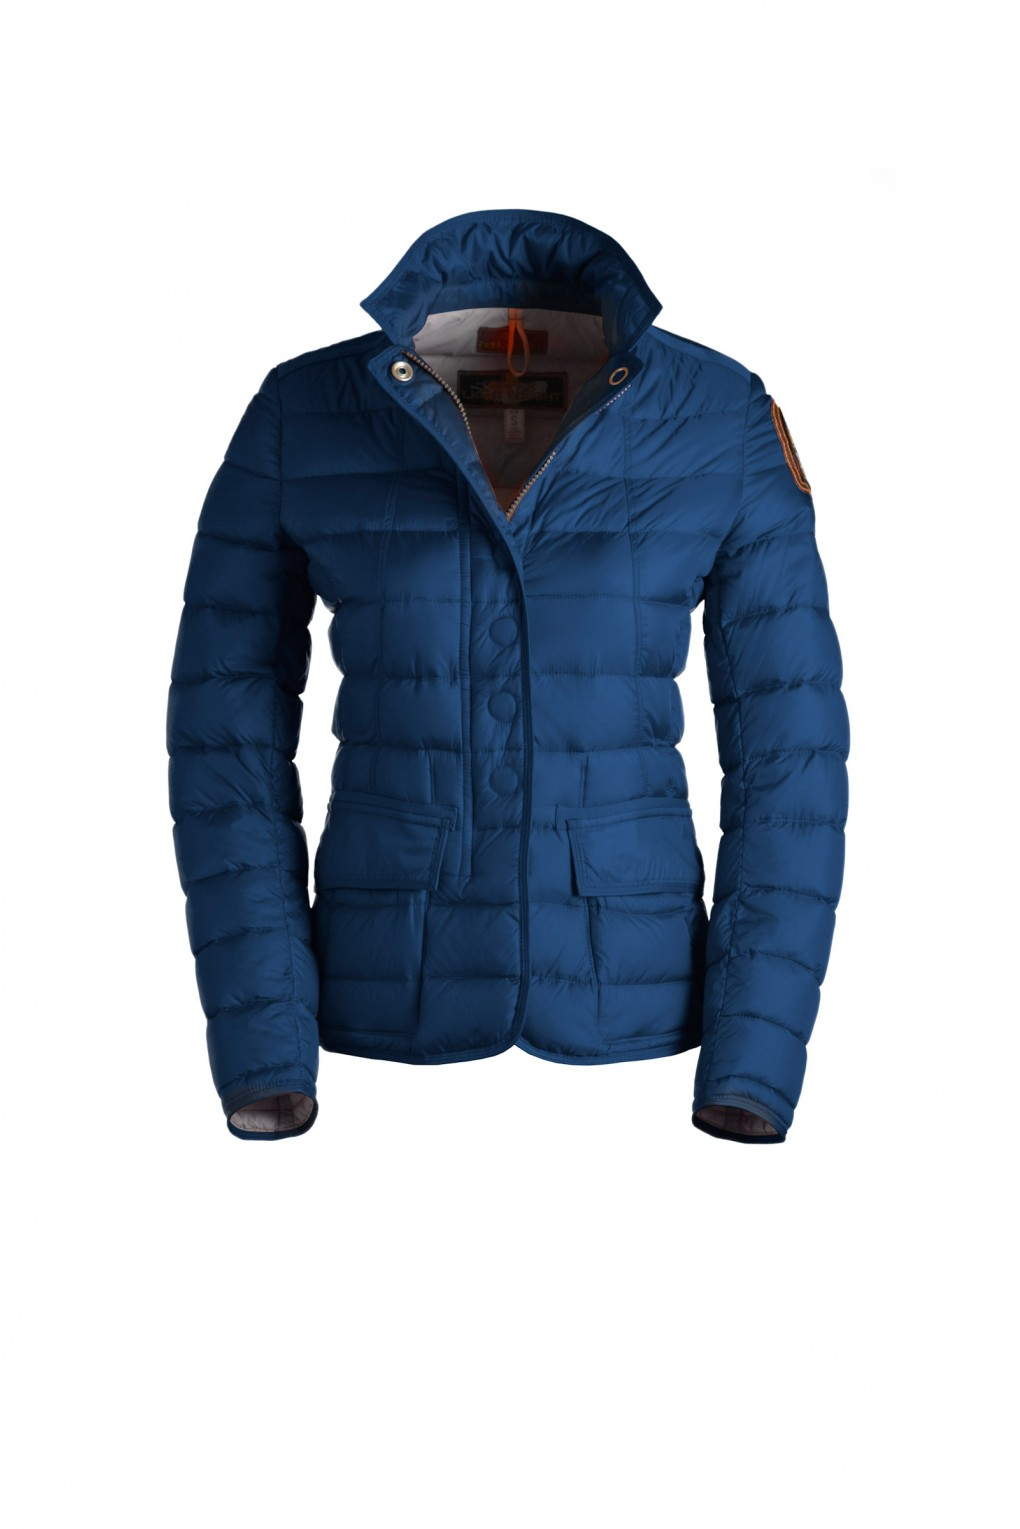 parajumpers ALISEE 6 woman outerwear Ocean